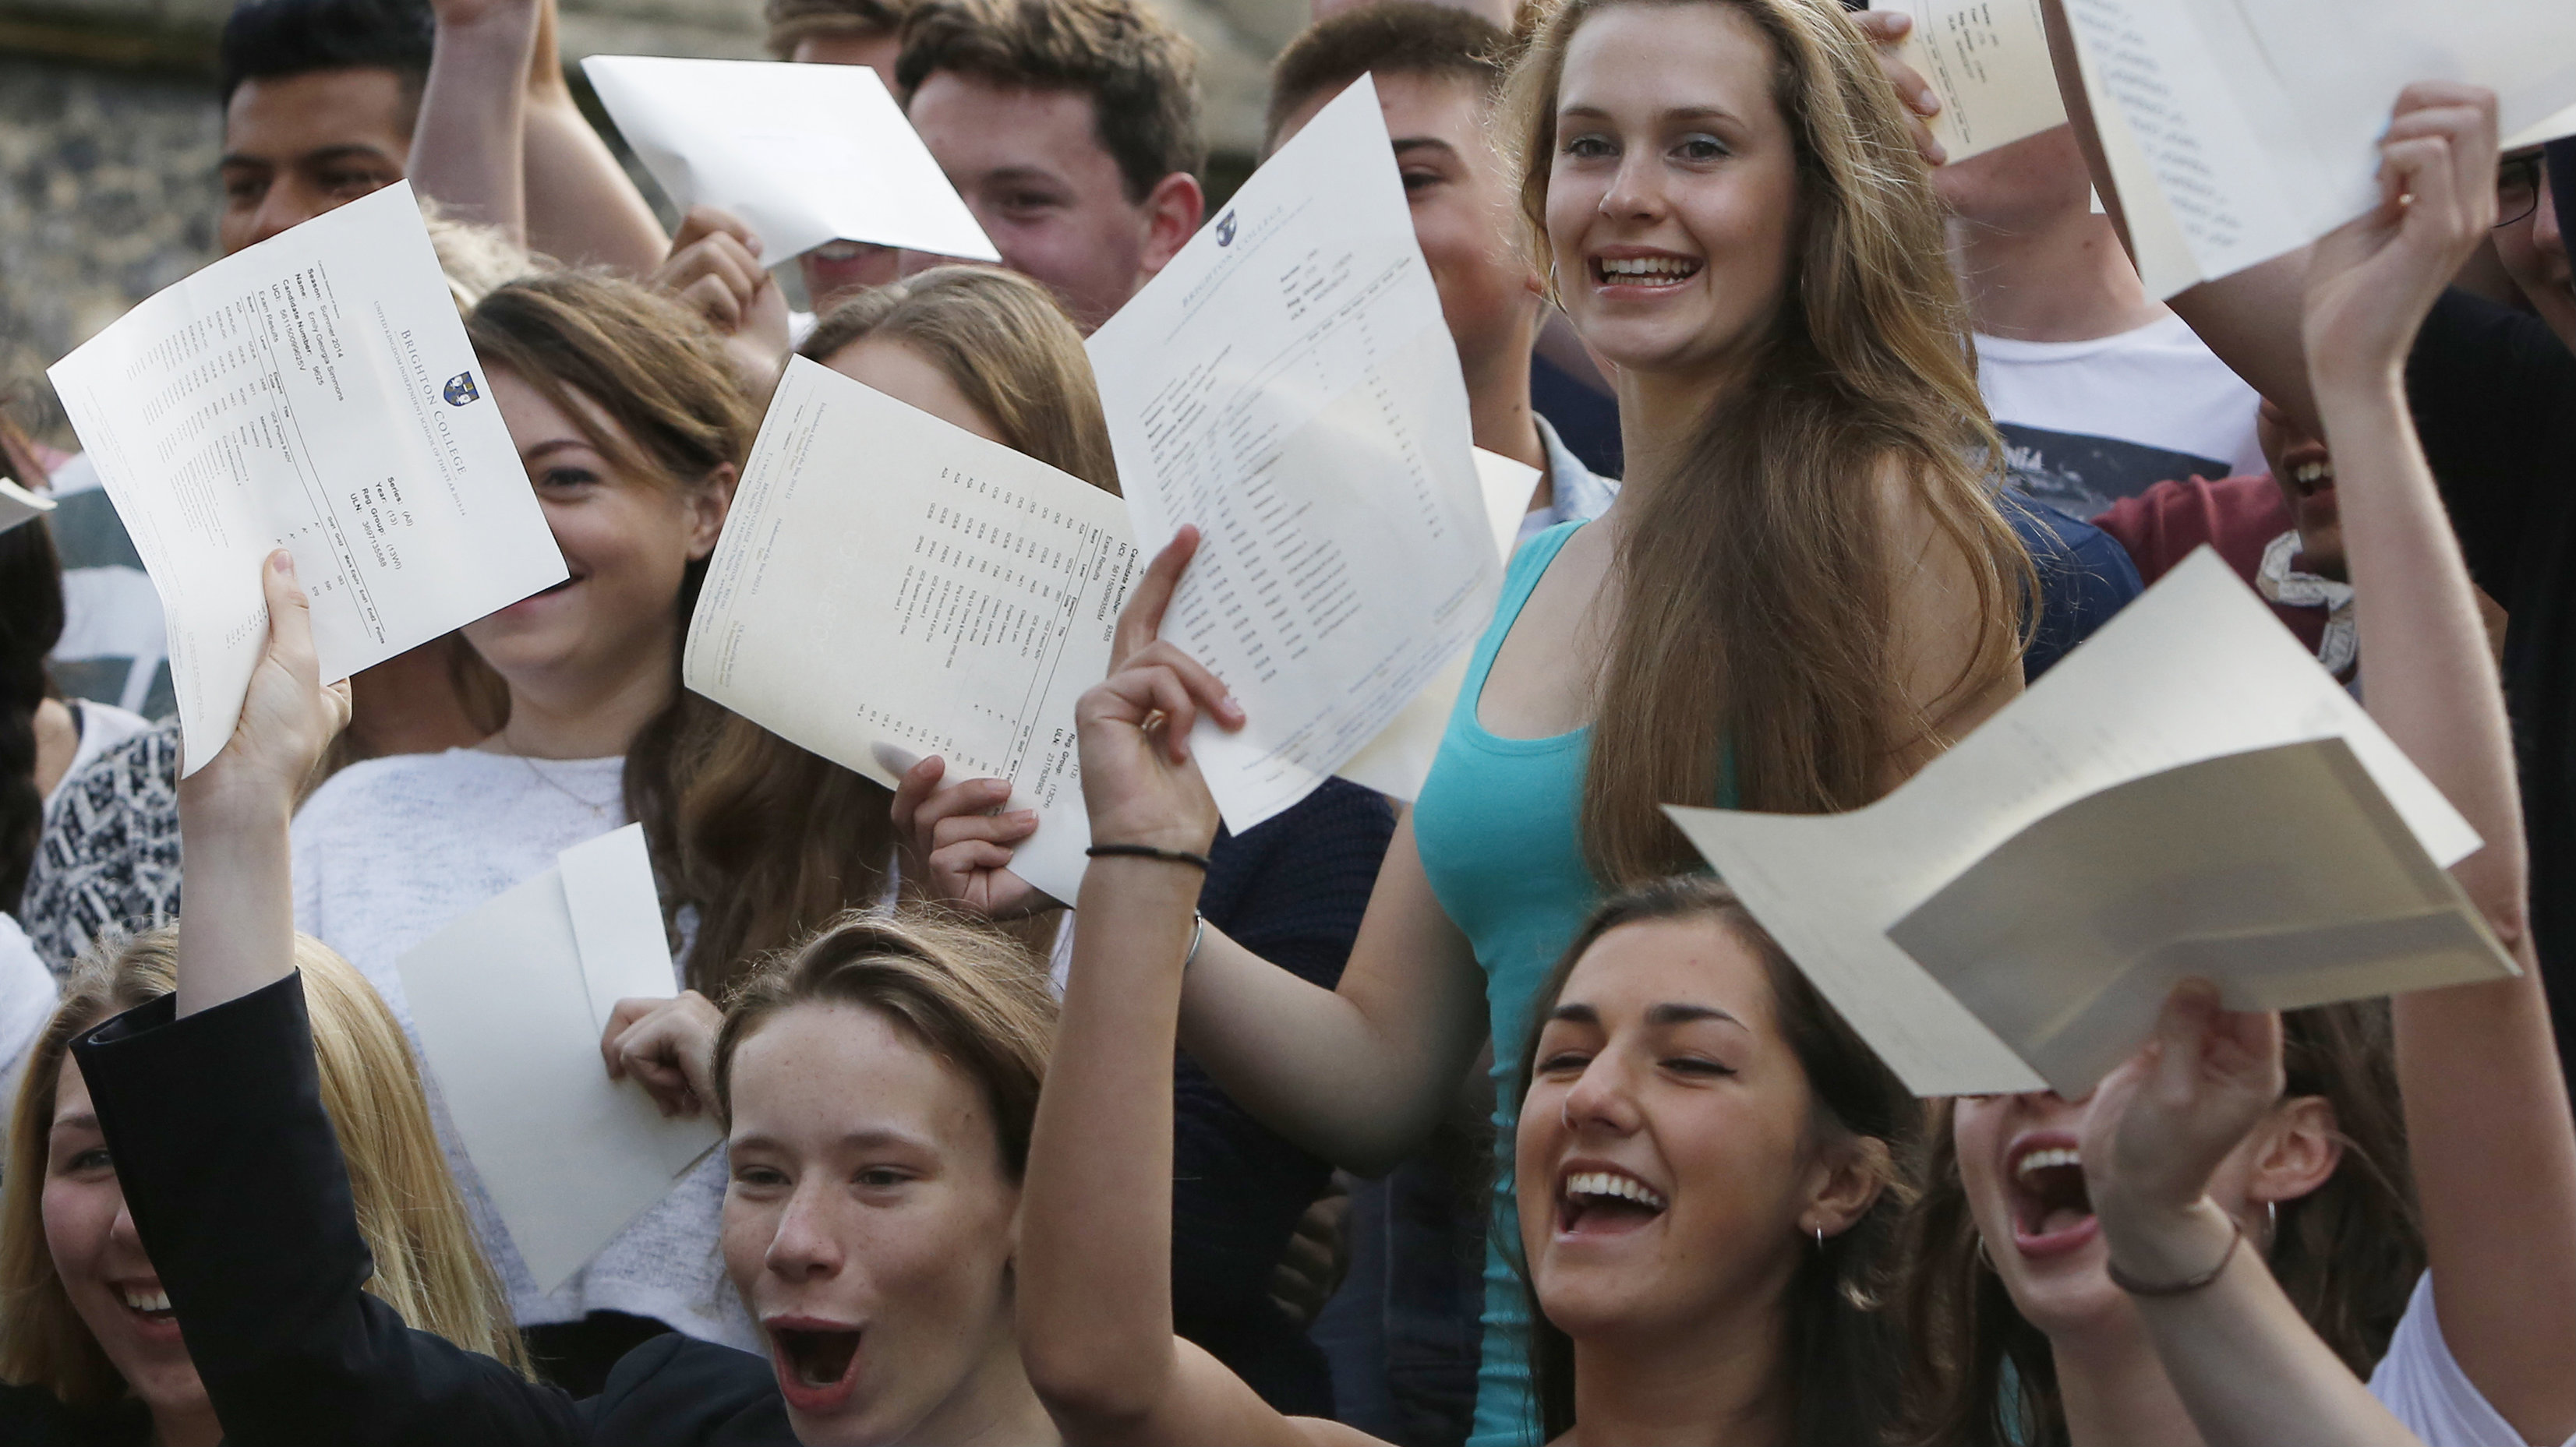 A-level student Tabitha Jackson (top R) poses with classmates for photographs, after she received her results of 4 A* A-levels, with a passrate of 99% dropping only 14 points out of a possible 1600, at Brighton College in Brighton, southern England August 14, 2014. Hundreds of thousands of teenage students received A-level results in England, Wales and Northern Ireland on Thursday.